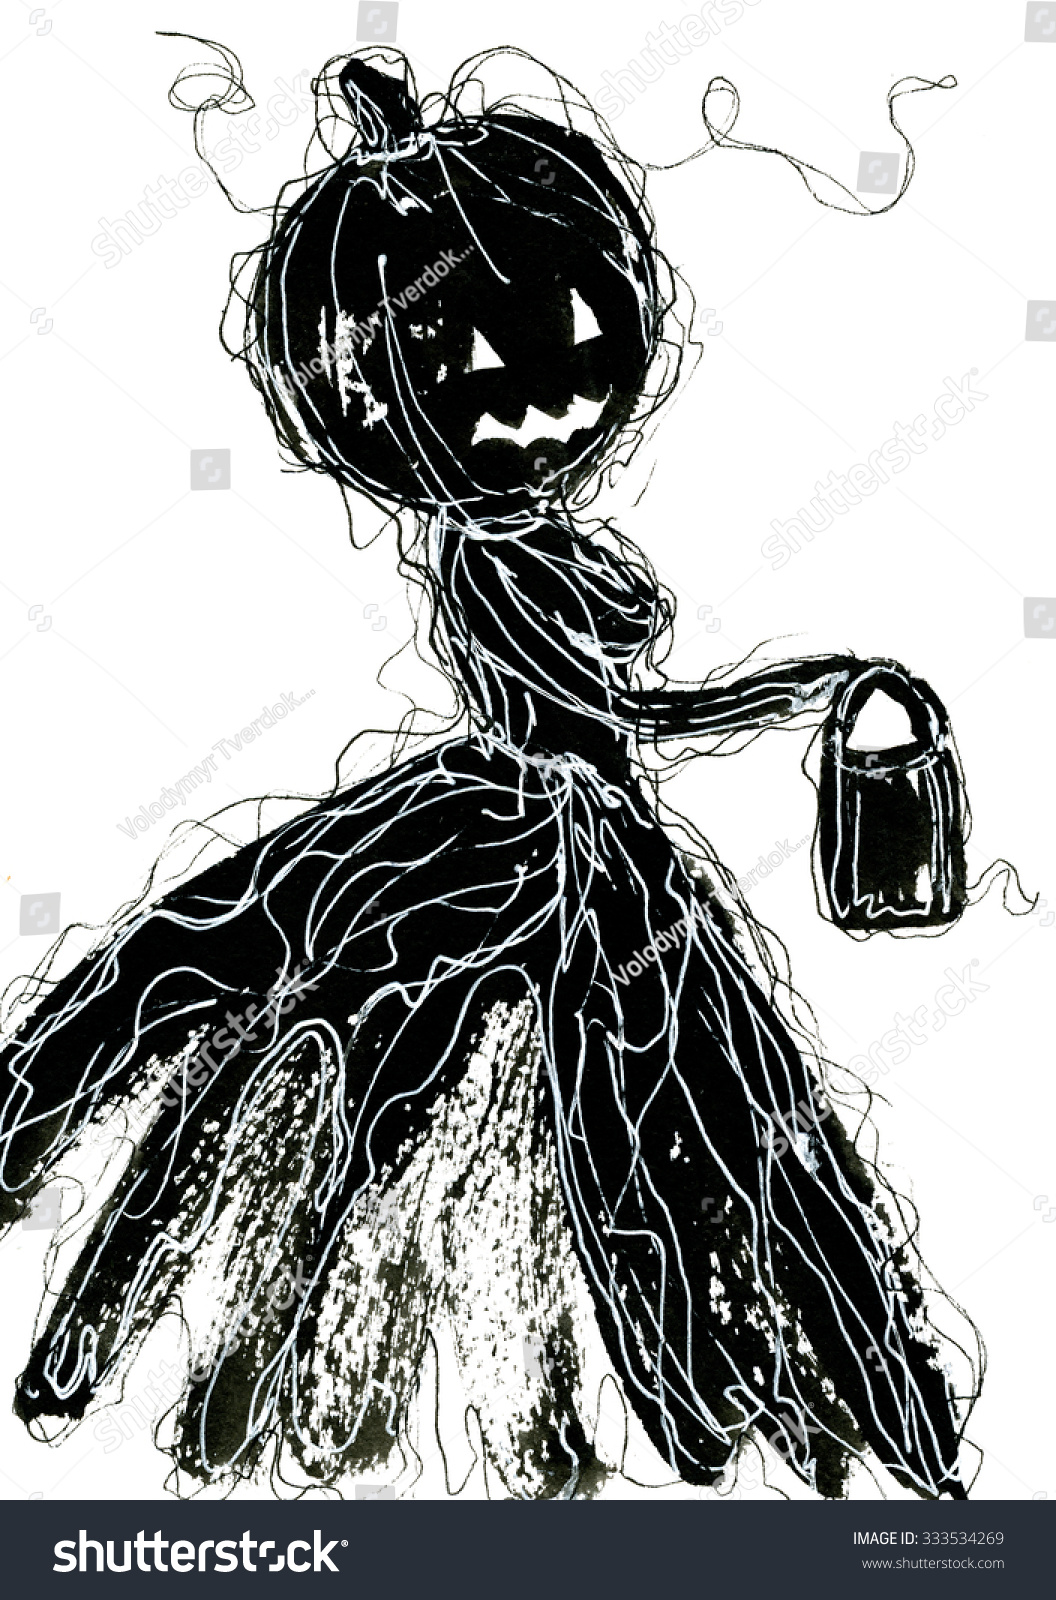 Art freehand pencil sketch outline illustration of one black color as halloween holiday symbol with scary